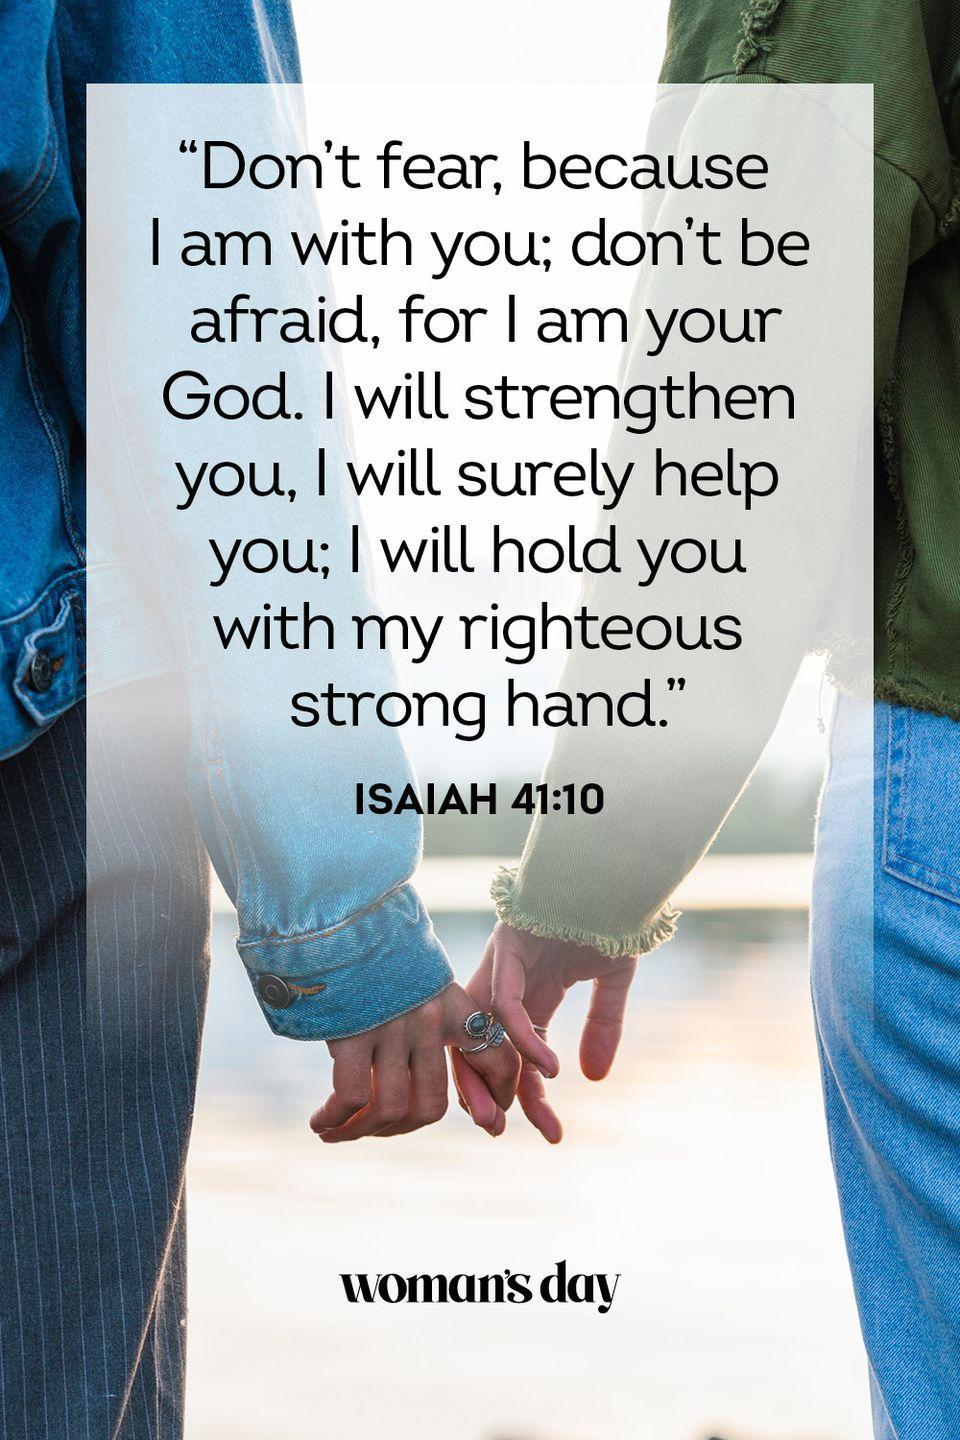 """<p>""""Don't fear, because I am with you; don't be afraid, for I am your God. I will strengthen you, I will surely help you; I will hold you with my righteous strong hand."""" </p><p><strong>The Good News:</strong> Even among the anxious times in life, God is always right beside you to help.</p>"""